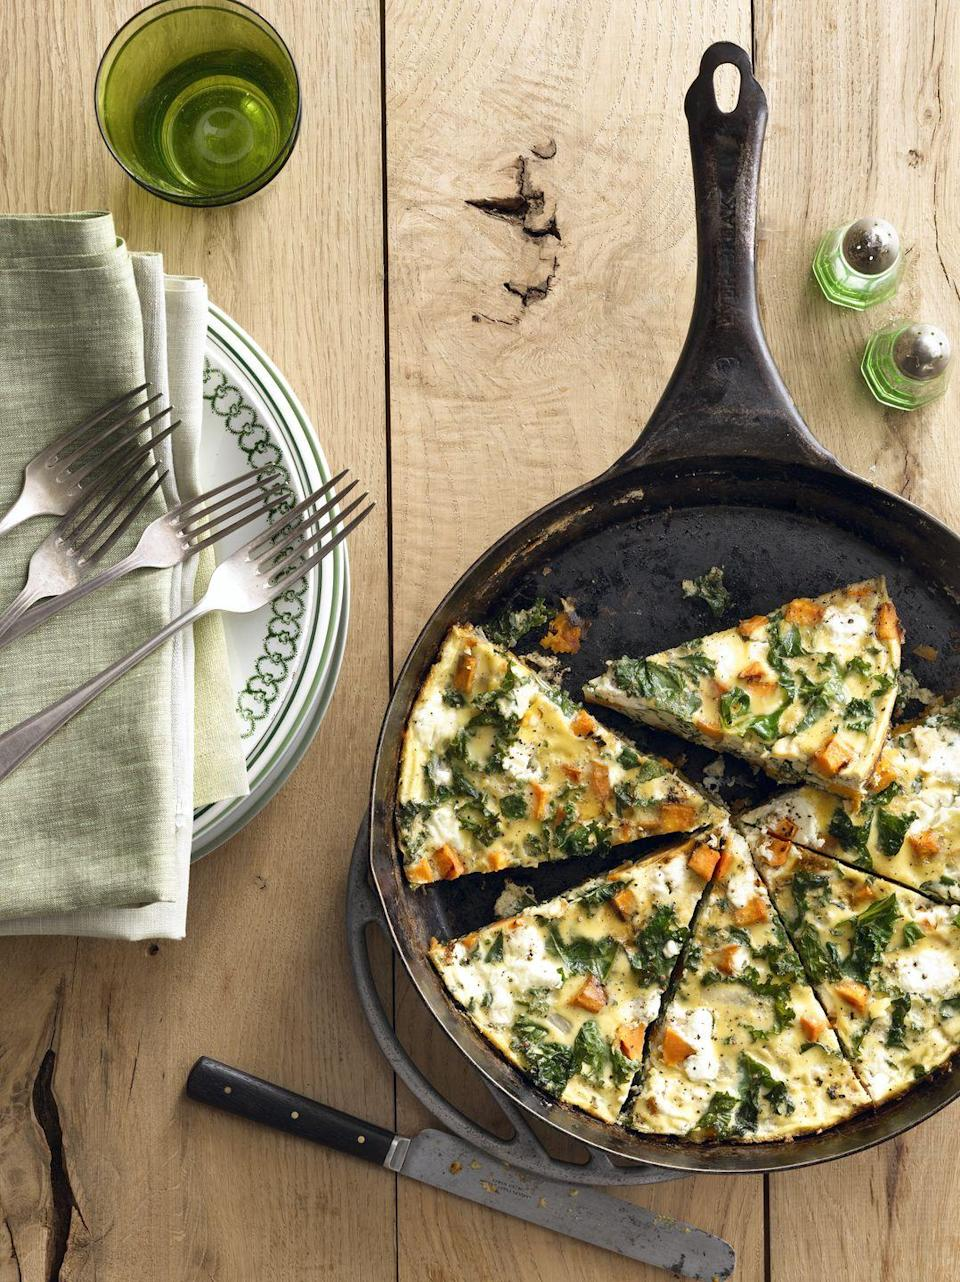 "<p>Make this healthy brunch on a Sunday and have lunch for the whole week, assuming you don't go back for thirds. </p><p><em><a href=""https://www.goodhousekeeping.com/food-recipes/a15996/sweet-potato-kale-frittata-recipe-clx0914/"" rel=""nofollow noopener"" target=""_blank"" data-ylk=""slk:Get the recipe for Sweet Potato Kale Frittata »"" class=""link rapid-noclick-resp"">Get the recipe for Sweet Potato Kale Frittata »</a></em></p>"